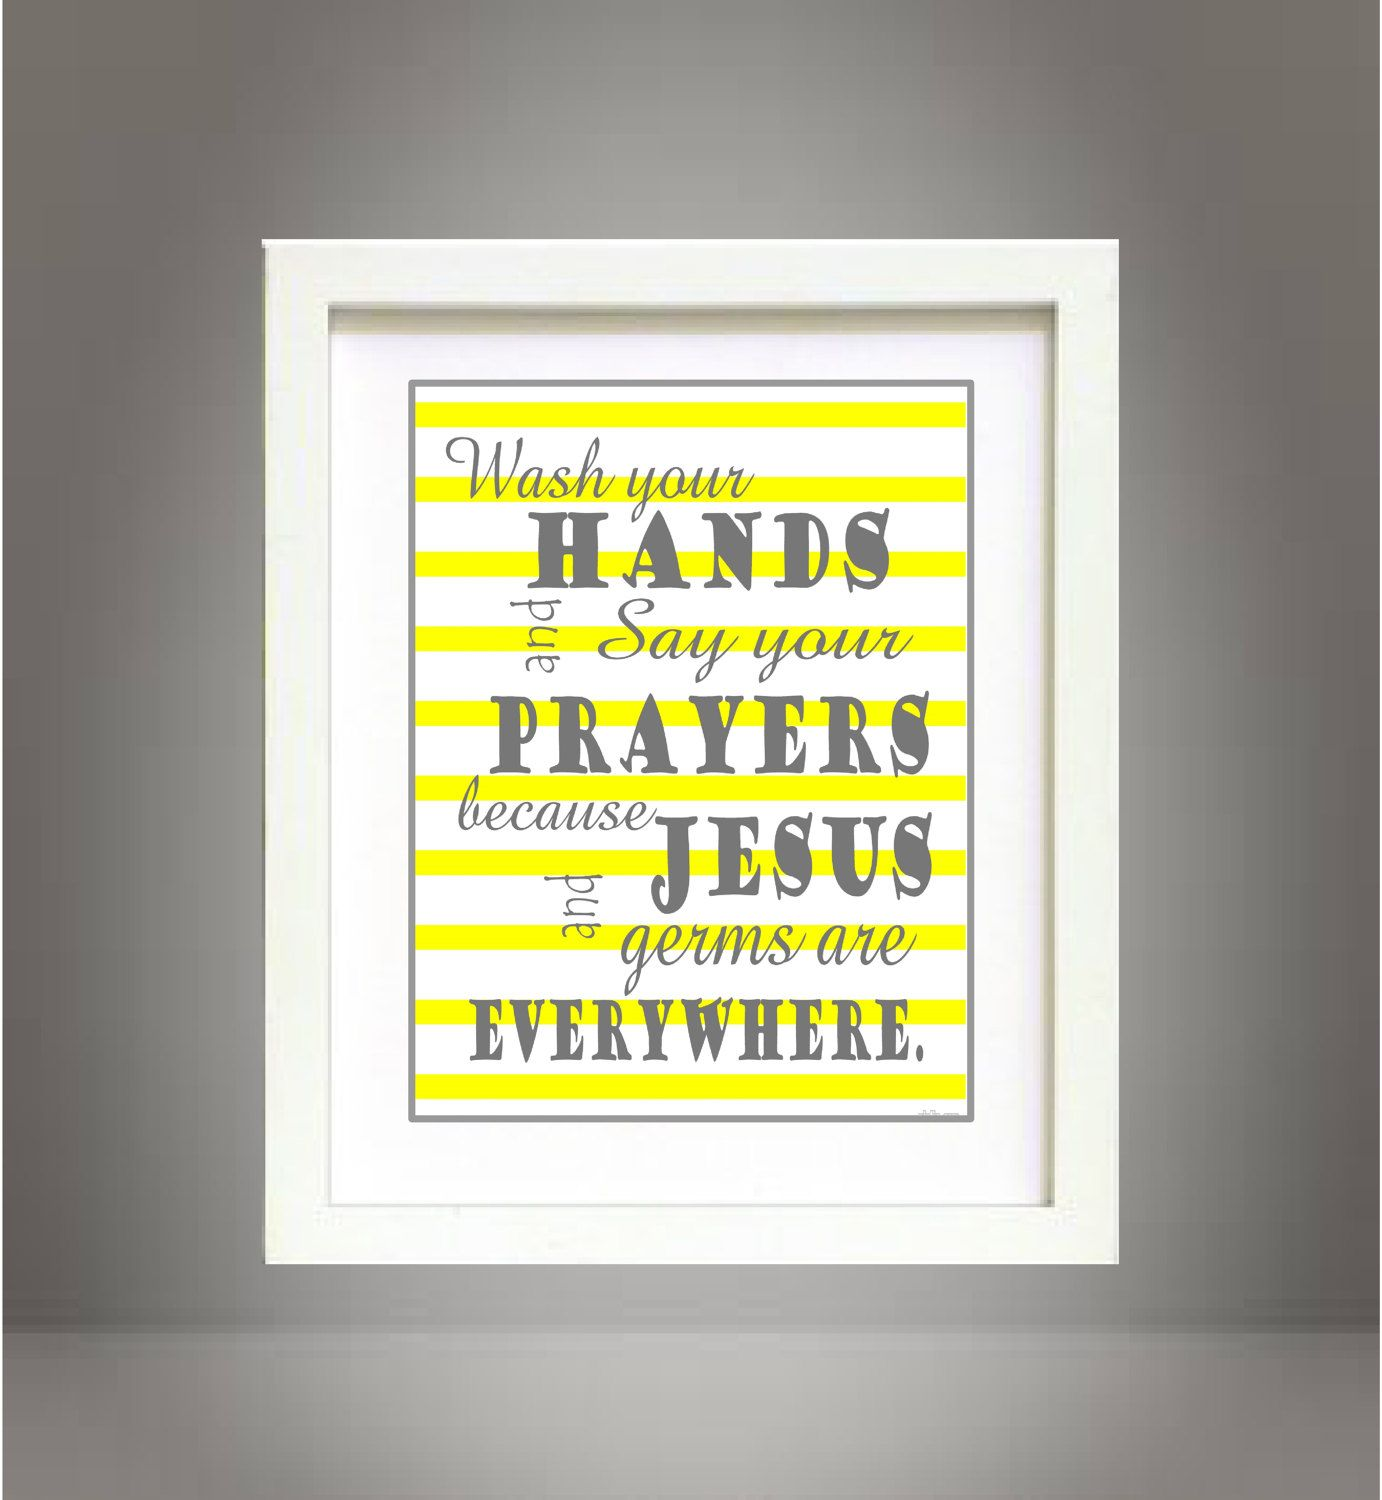 Bathroom wall art printables - Yellow Wash Your Hands And Say Your Prayers Bathroom Wall Art Print Poster 8x10 Digital Download Printable E Print